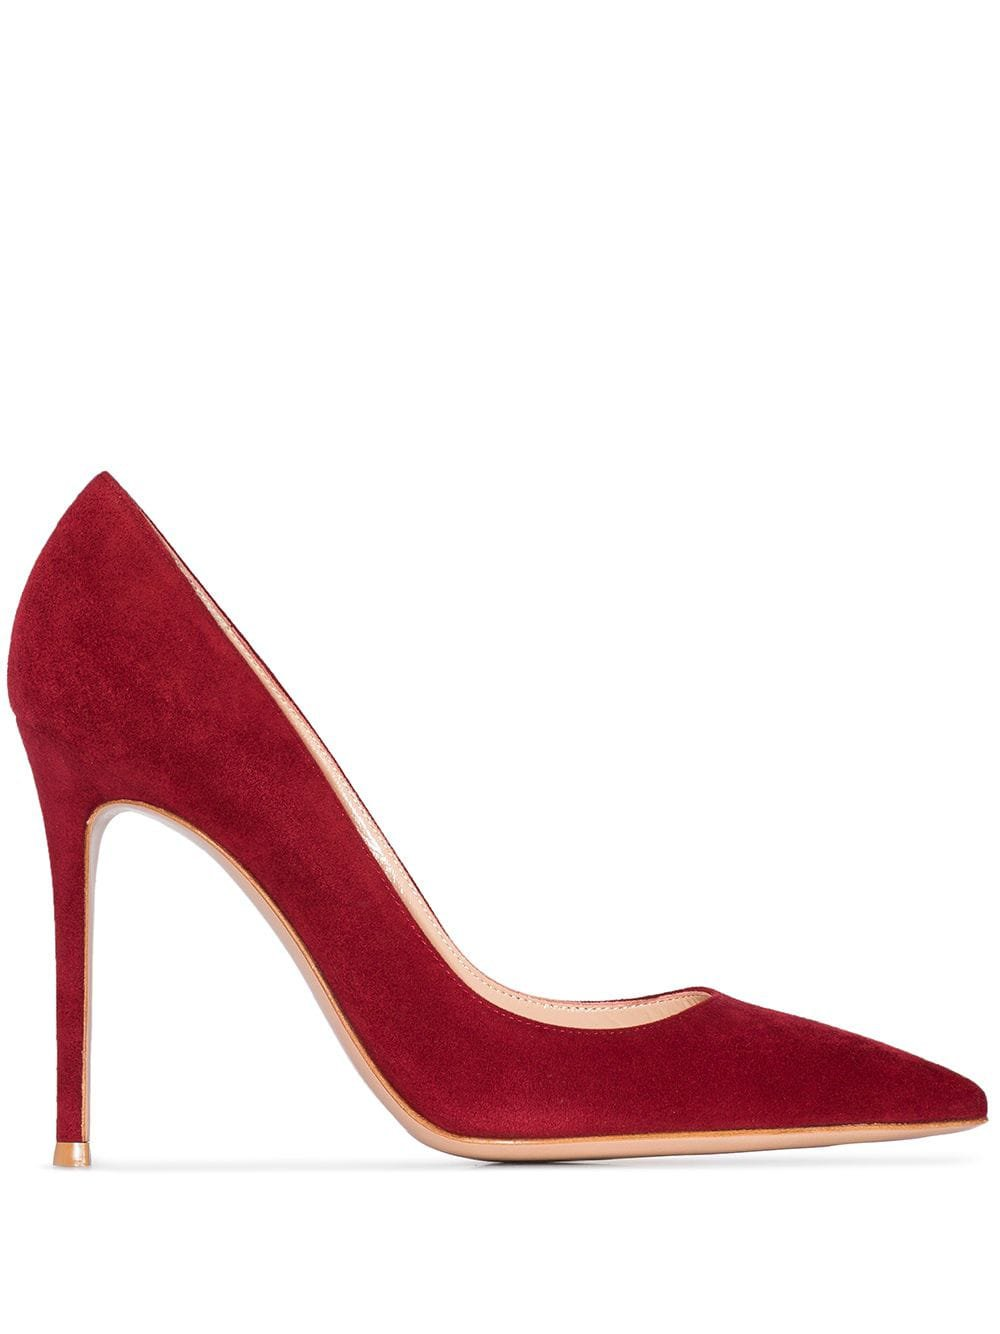 Gianvito Rossi classic 105mm pumps £520 - Fast Global Shipping, Free Returns